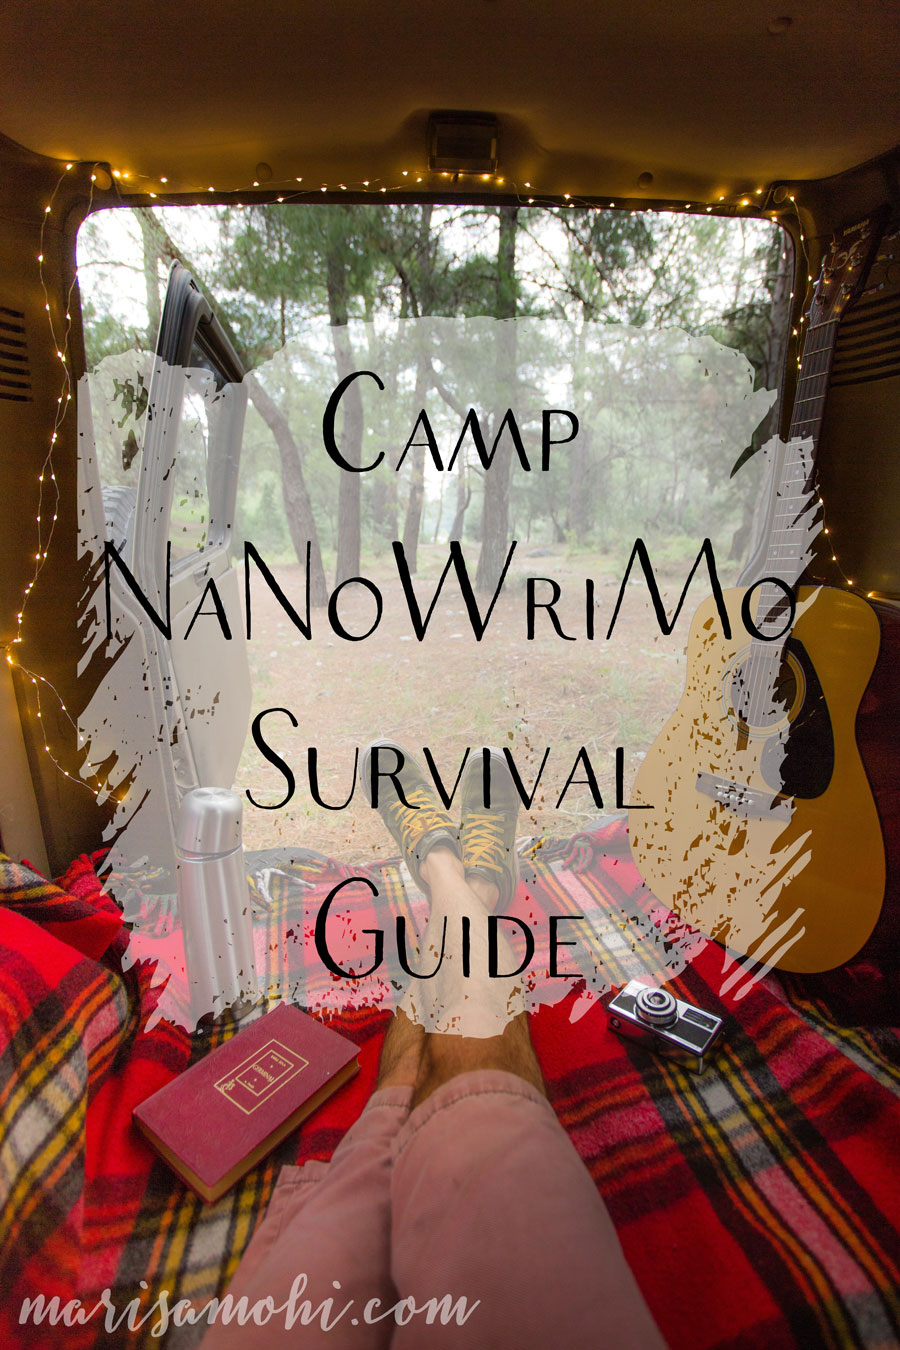 Camp NaNoWriMo Survival Guide | This Camp NaNoWriMo survival guide contains the dos and don'ts of Camp NaNoWriMo. If you're looking to get the most out of Camp NaNoWriMo, this post is for you!